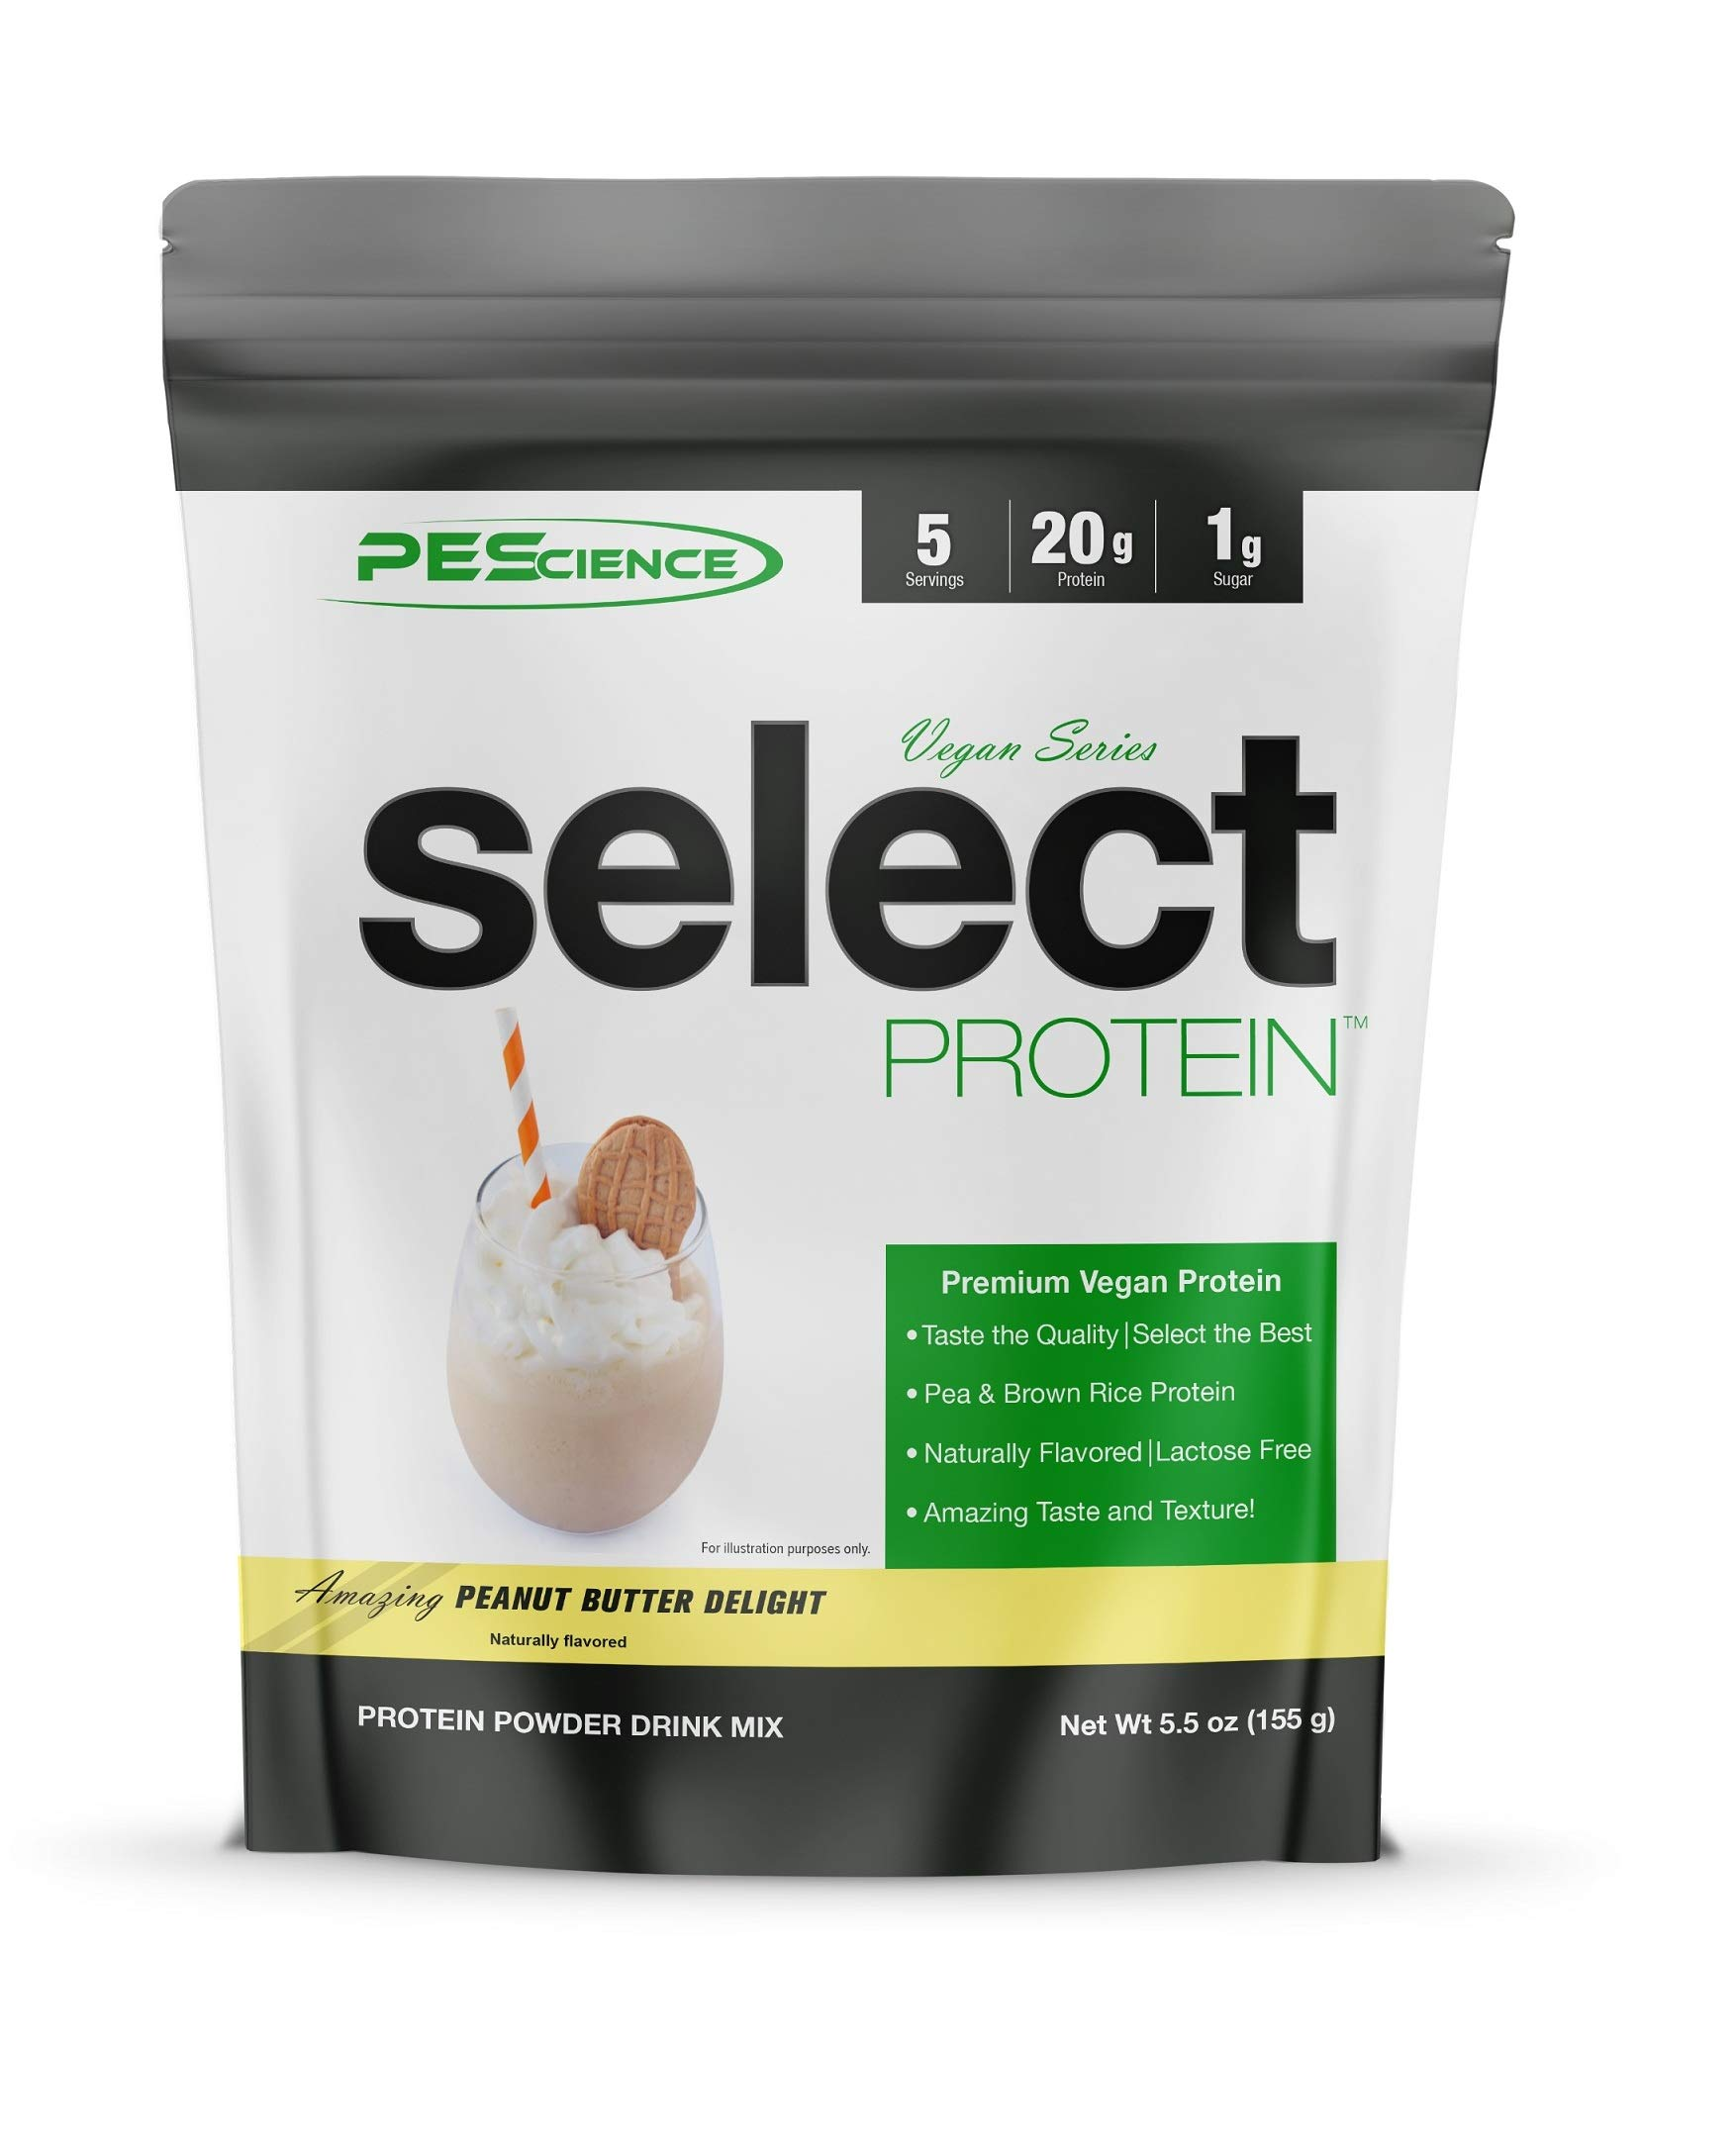 PEScience Select Vegan Plant Based Protein Powder, Peanut Butter Delight, 5 Serving, Premium Pea and Brown Rice Blend